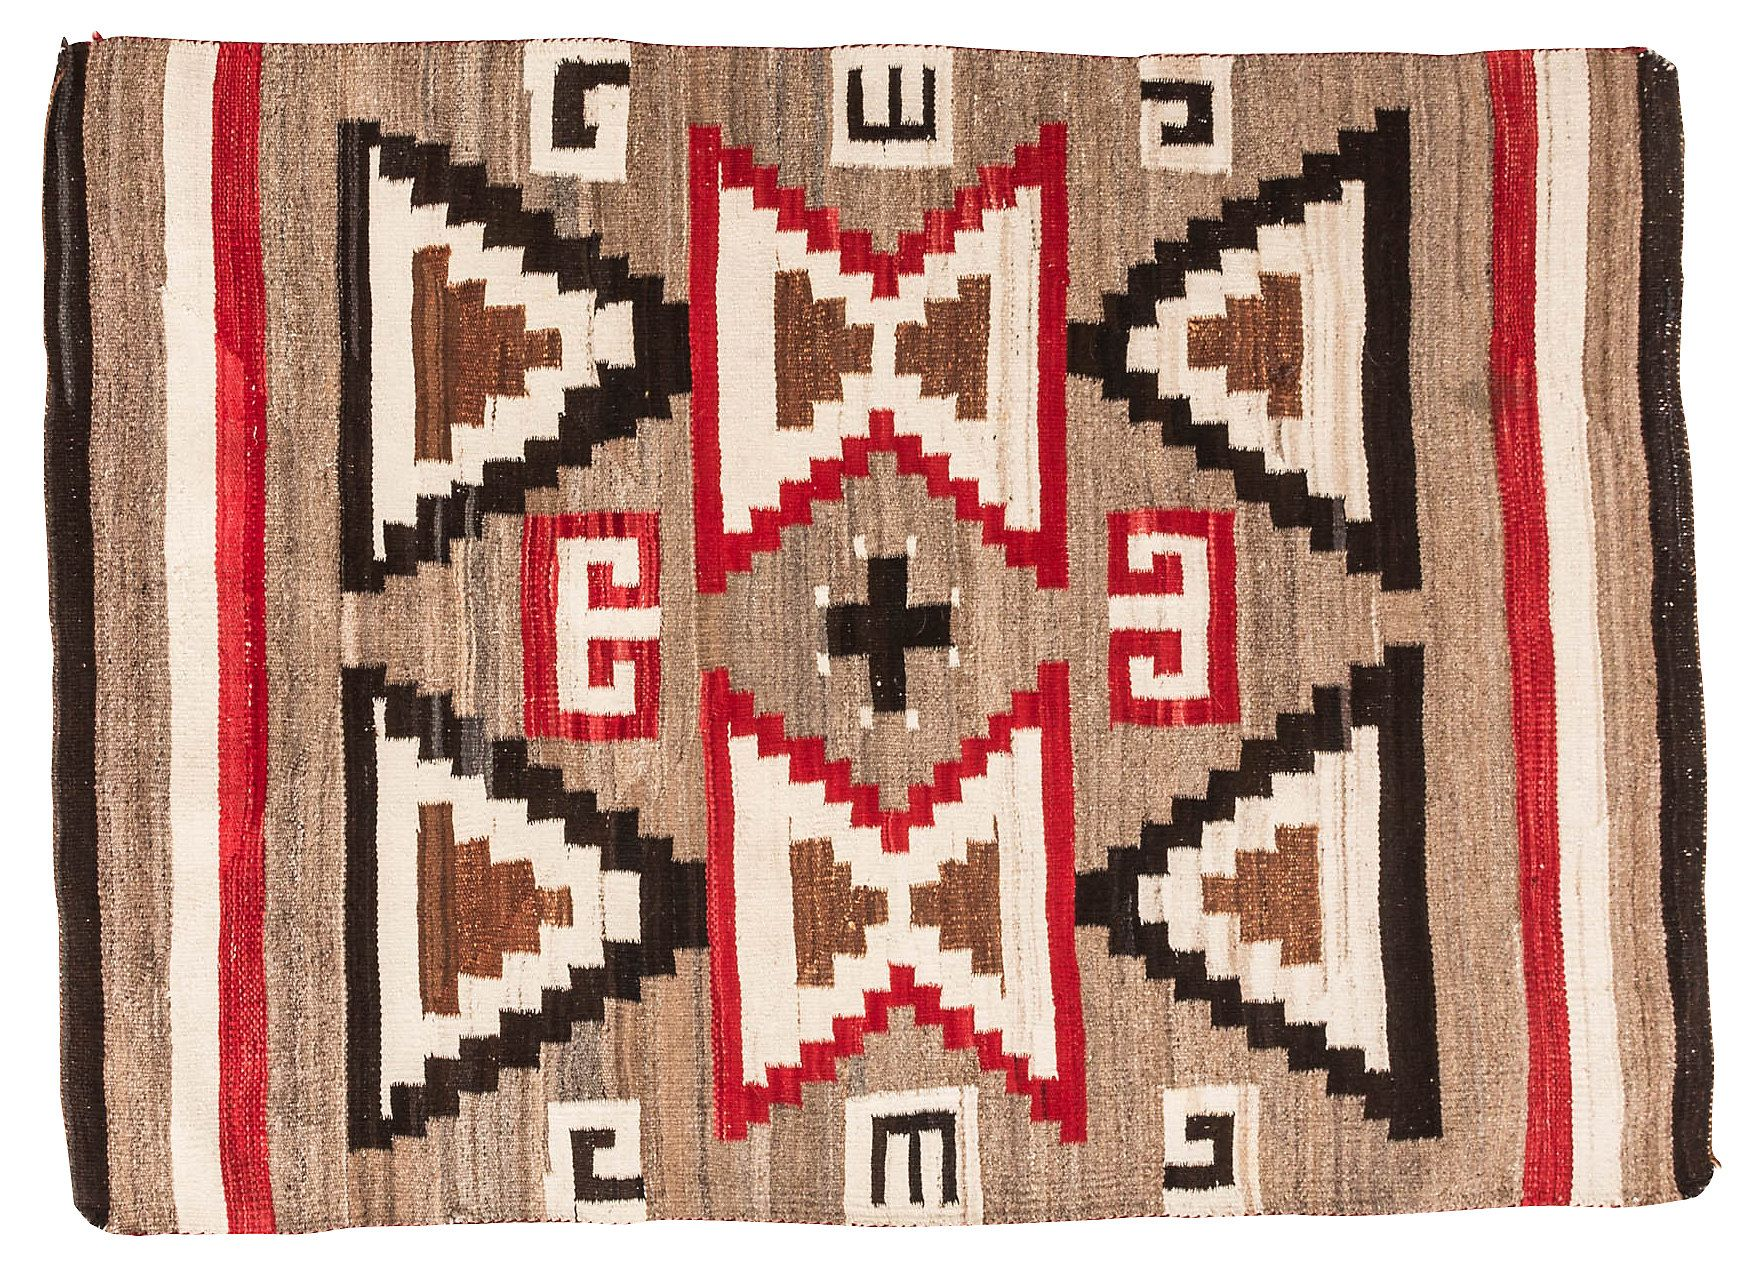 Navajo-style rug designed with triangles, hourglass shapes, and a small black cross in the middle. Circa 1930.